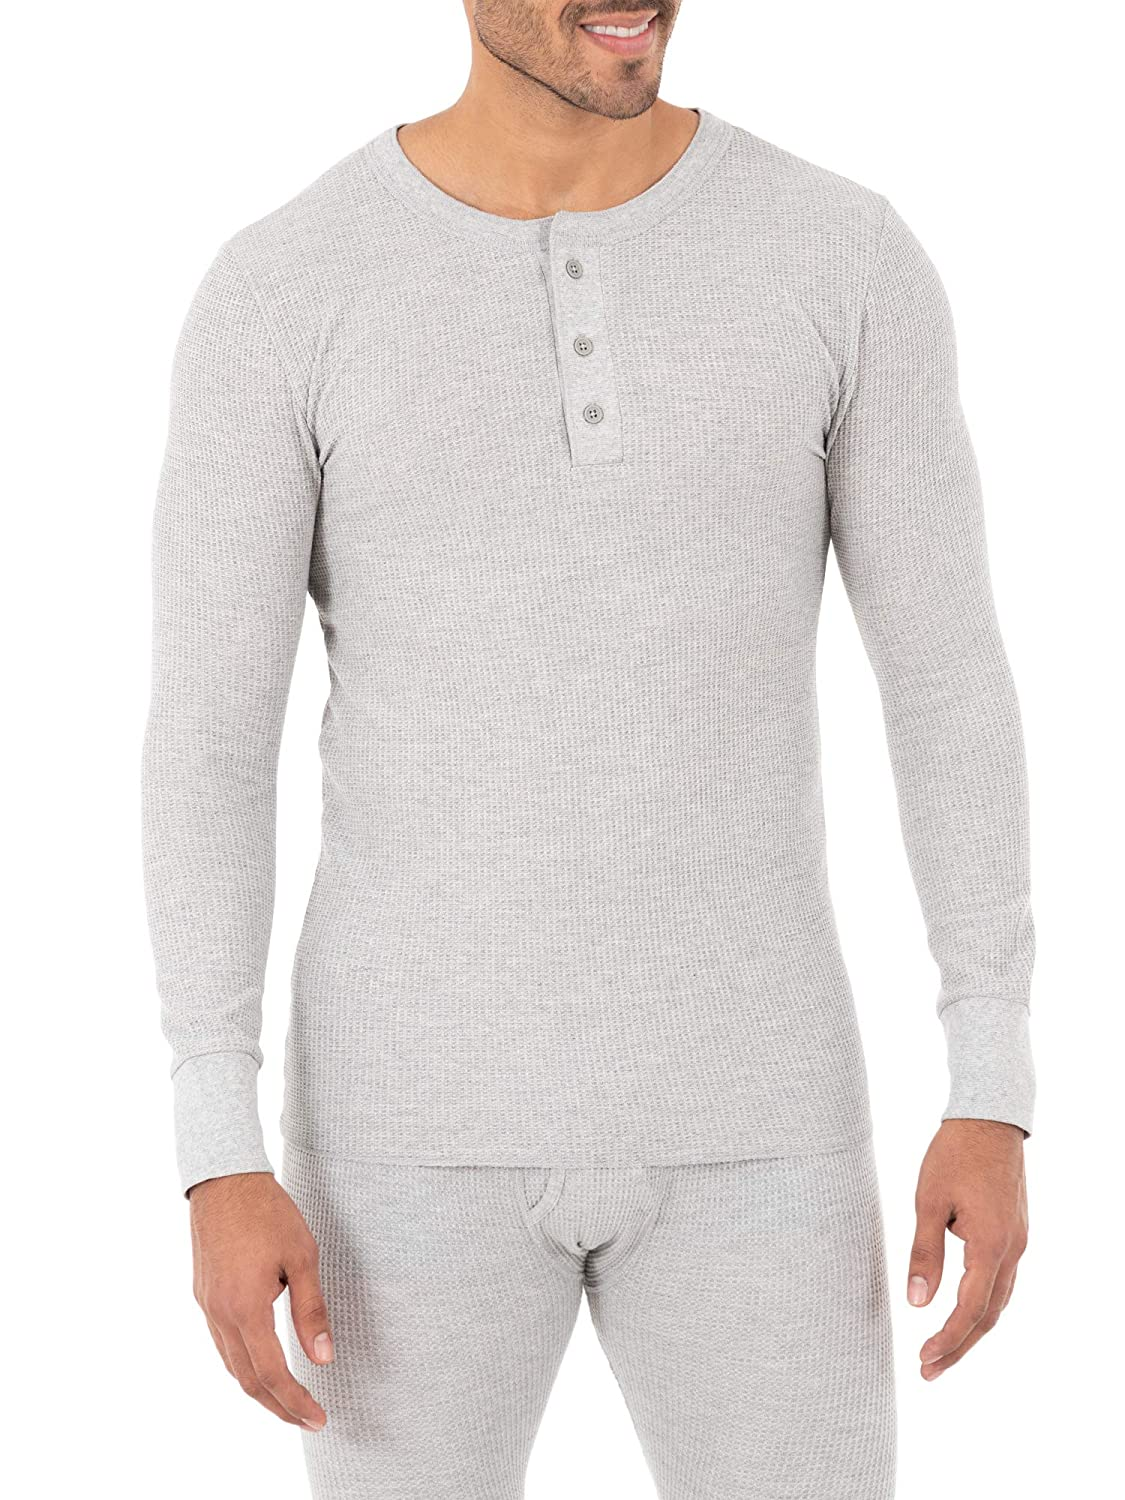 Fruit of the Loom Mens Classic Midweight Waffle Thermal Henley Top